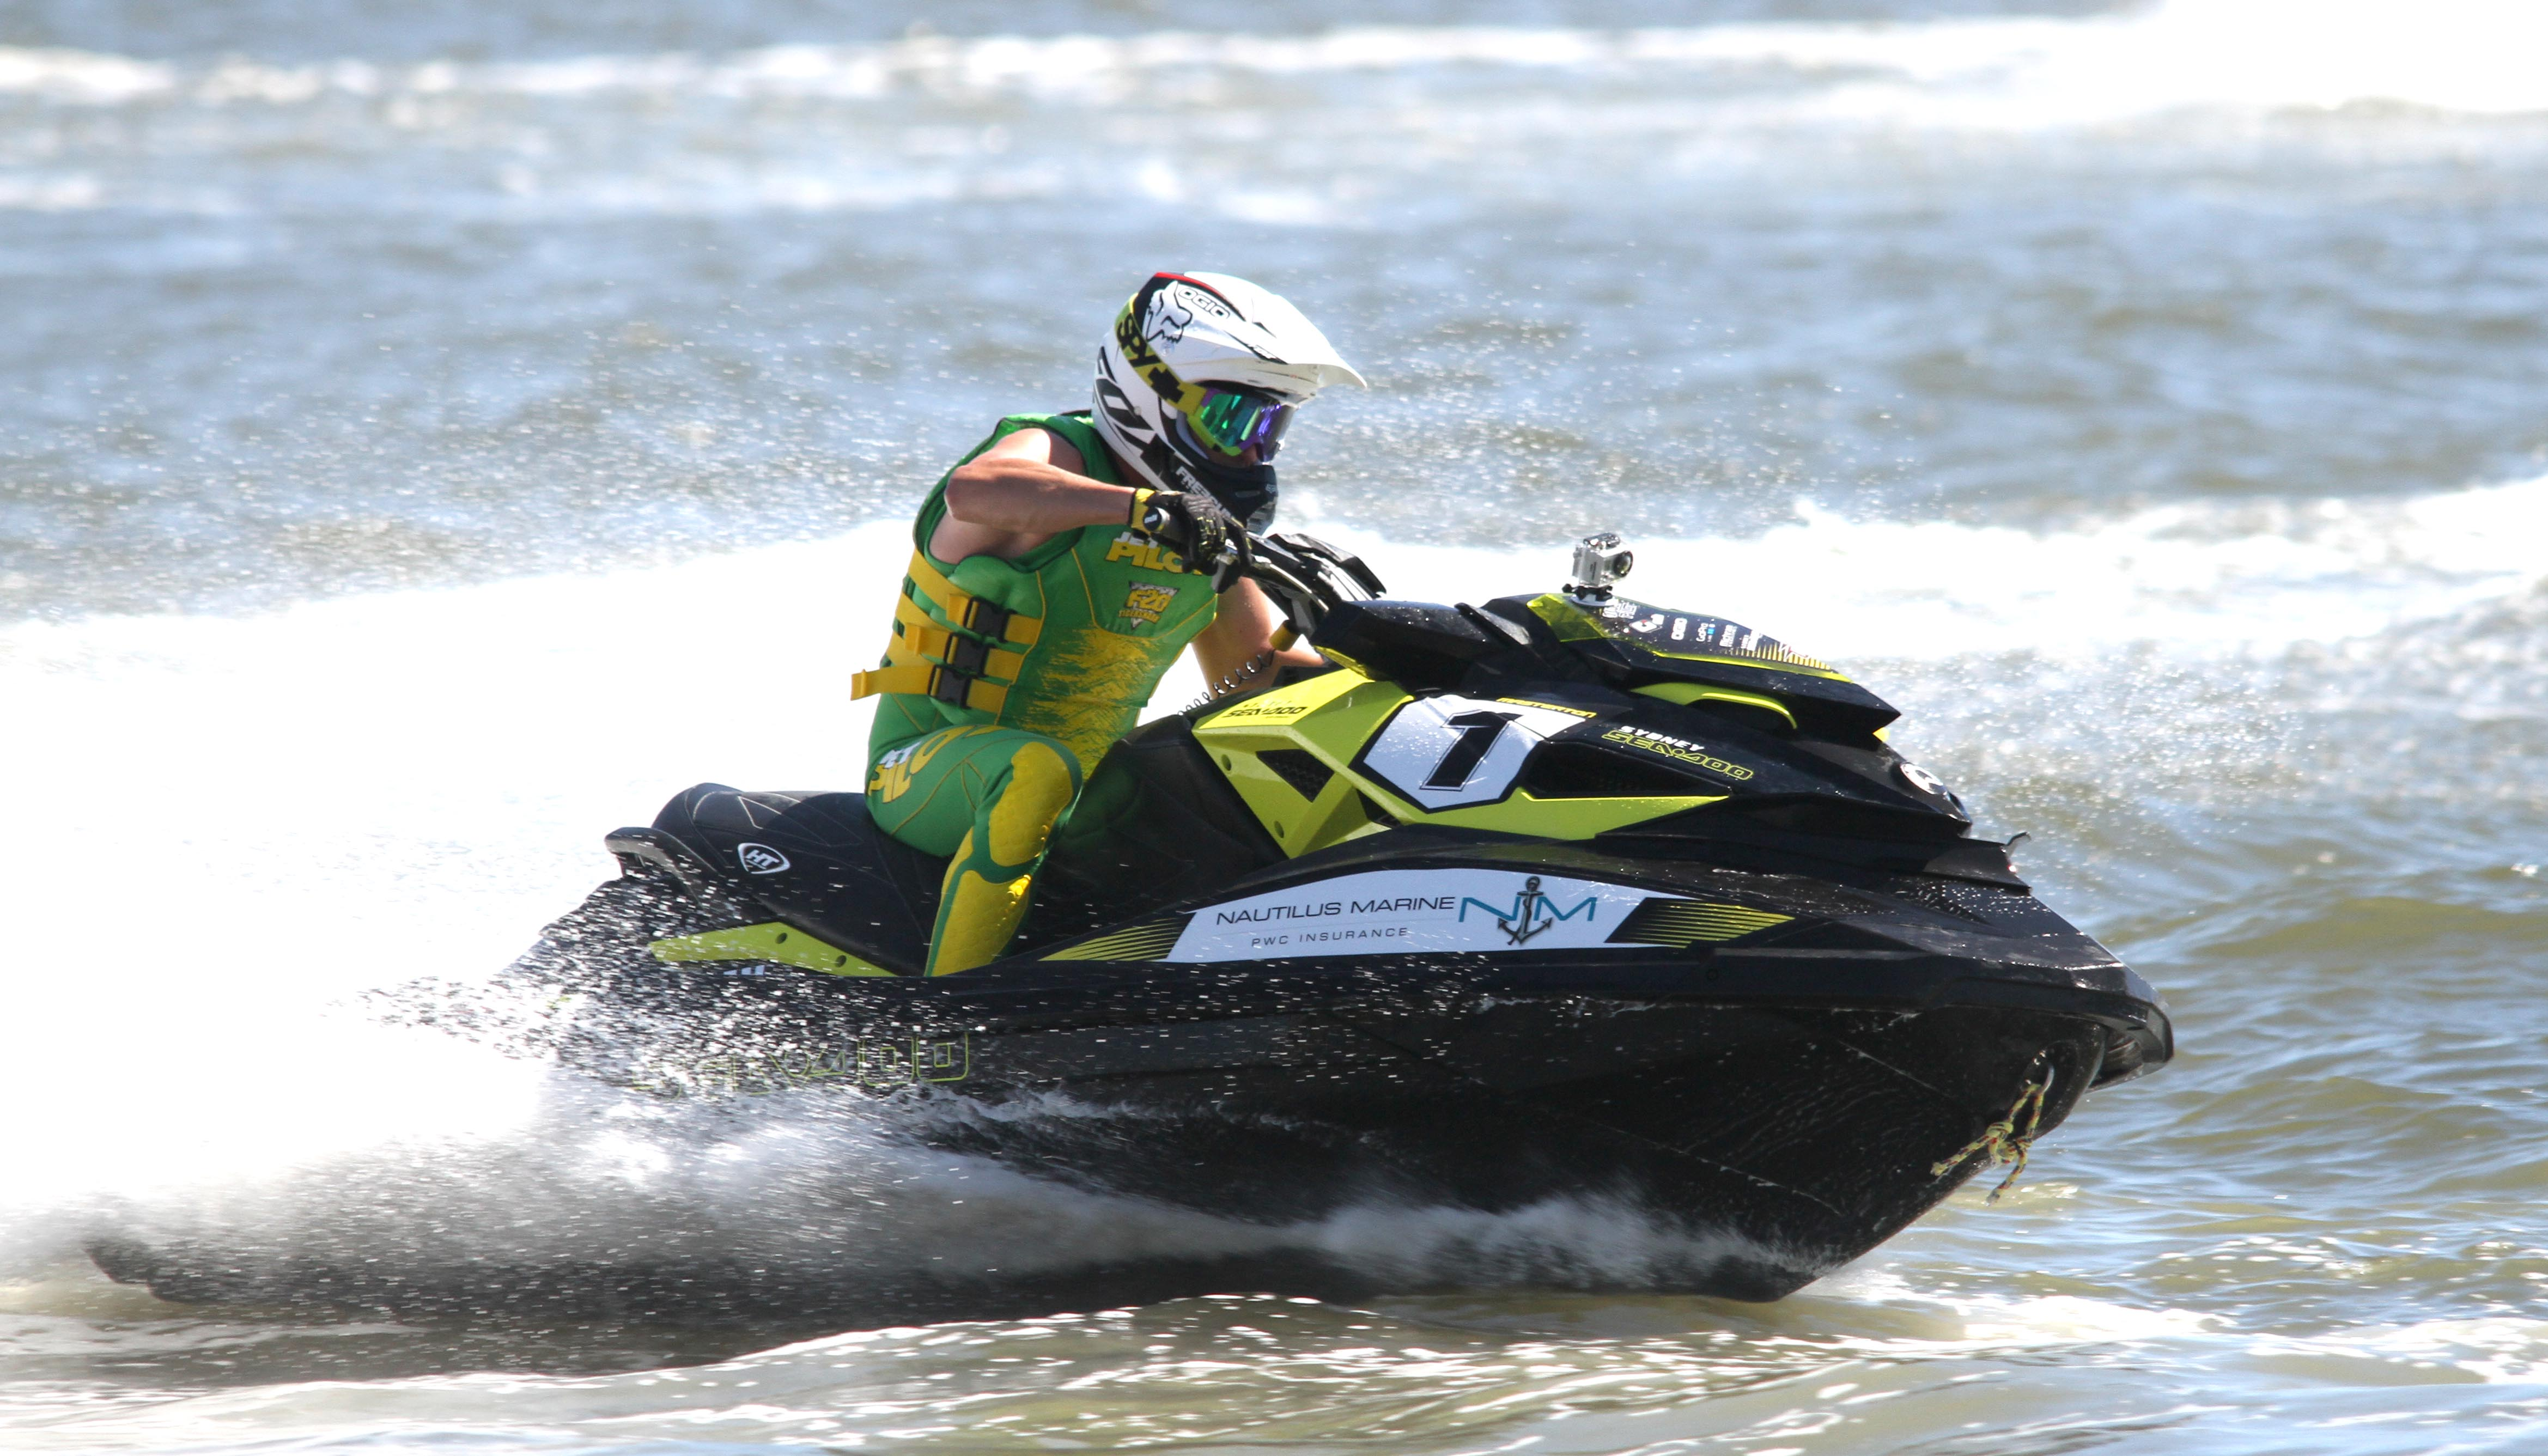 Yamaha Jetpower 'King of the River' lights up Perth - RIDE SAFE